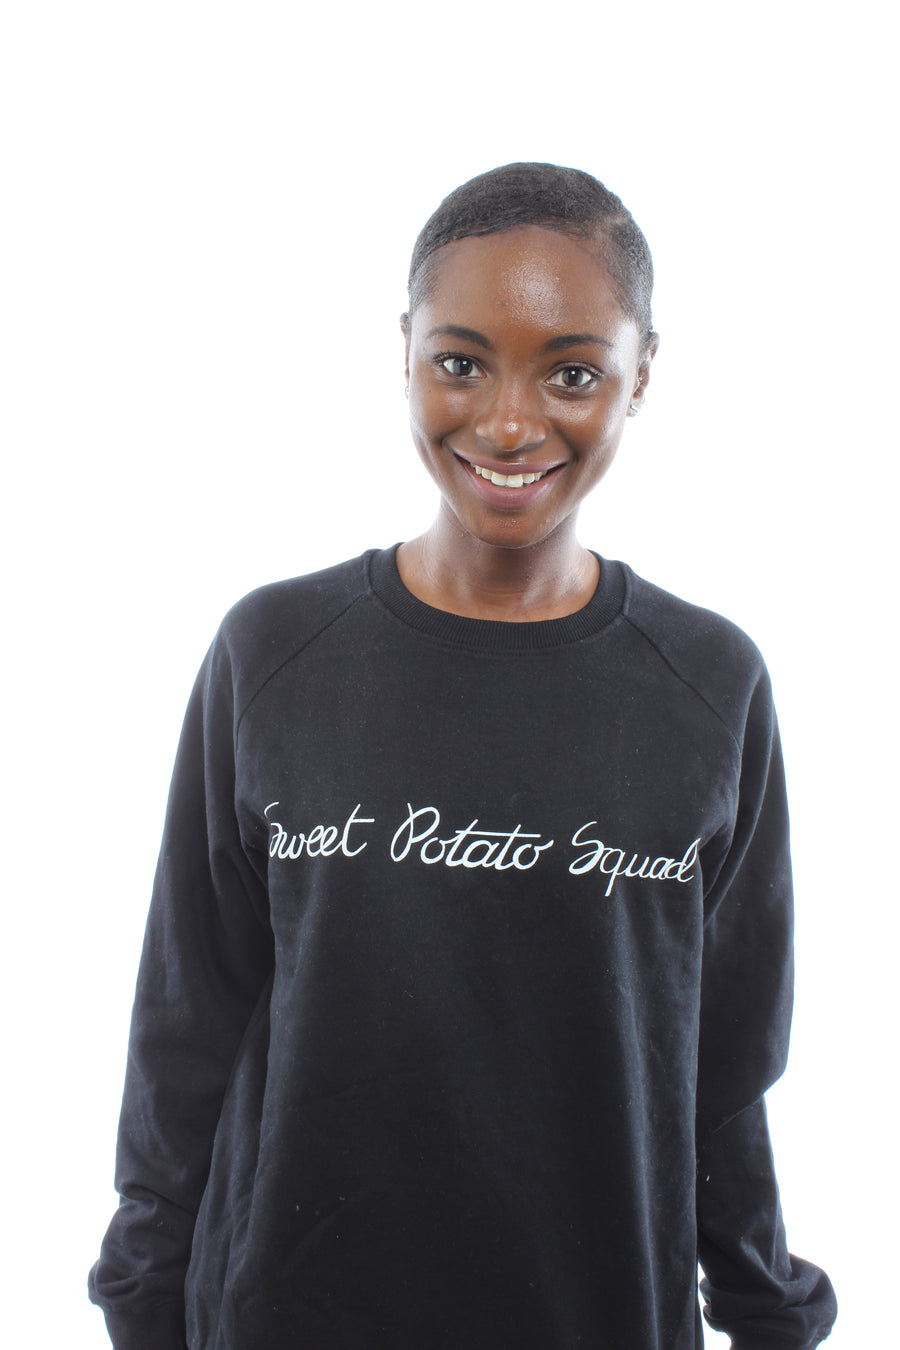 'Sweet Potato Squad'™ organic cotton SWEATSHIRT | SPECIAL EDITION